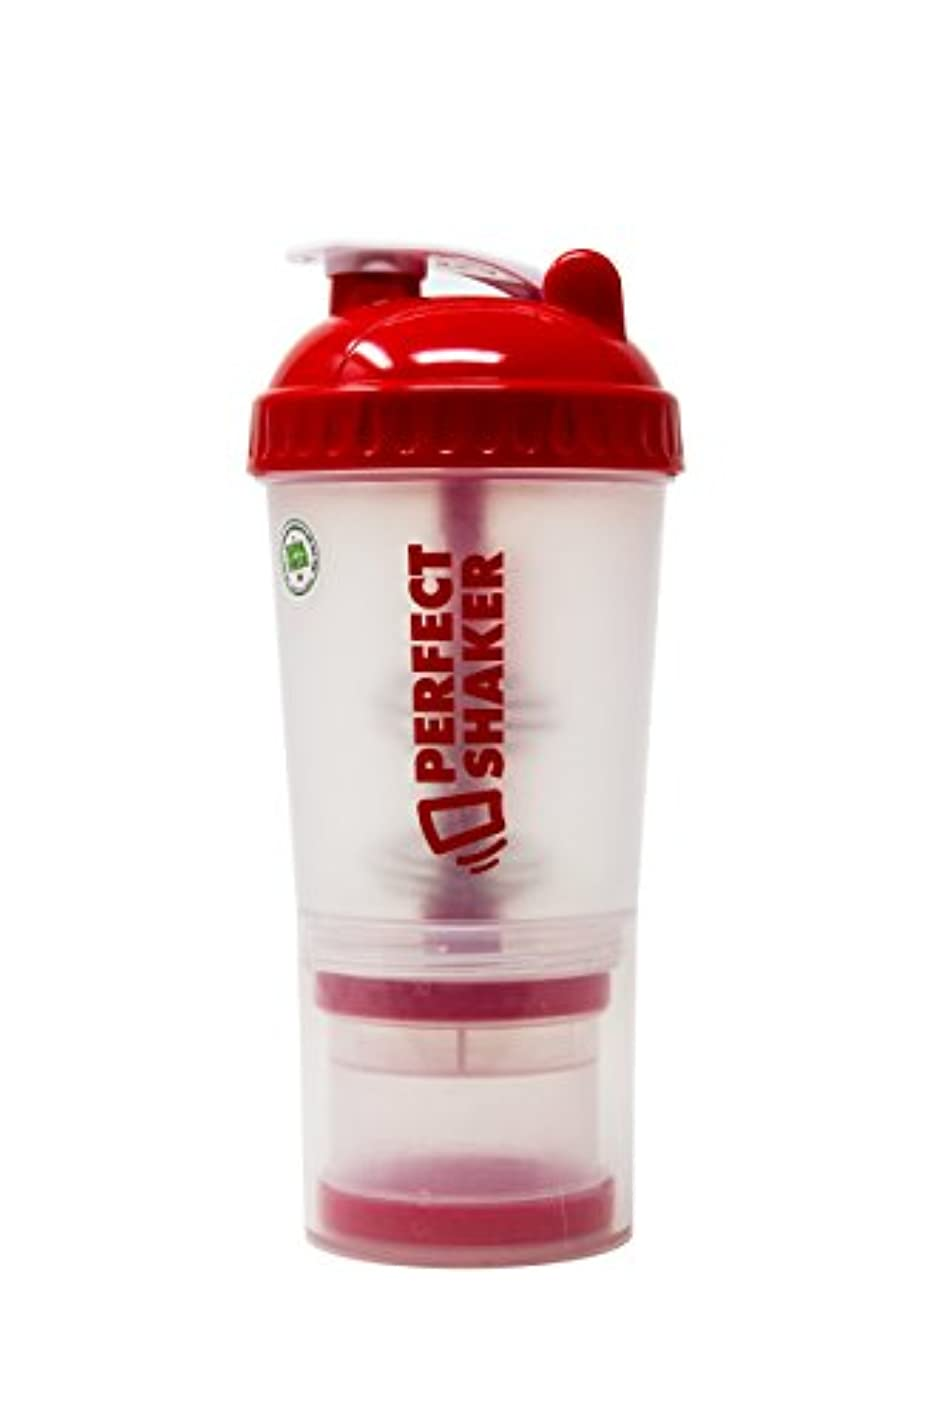 吐き出すわかるに応じてPerfectShaker Plus Shaker Bottles